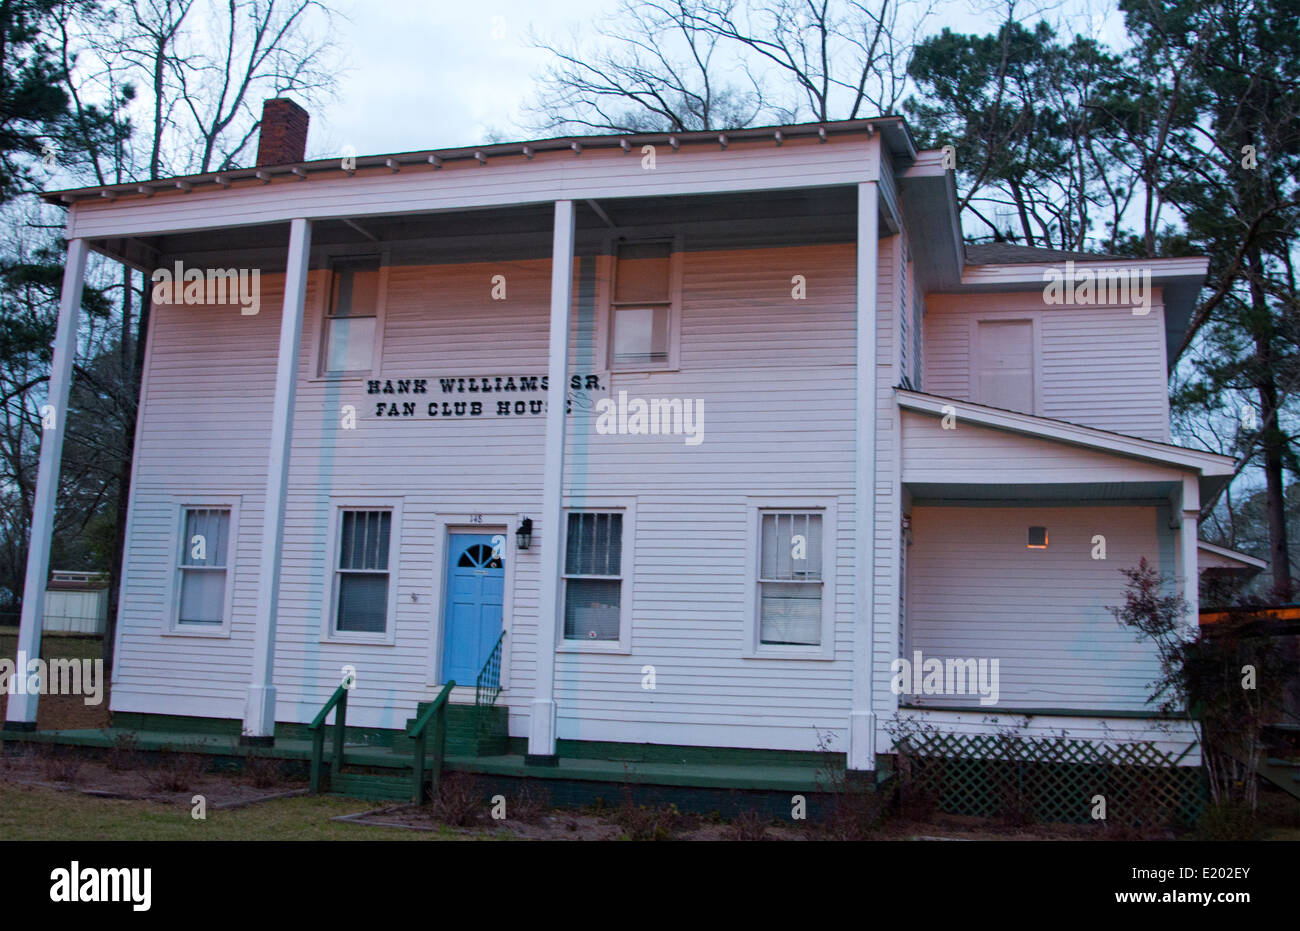 Georgiana Alabama Hank Williams Sr Fan Club House in hometown with large white home in small town music legend - Stock Image